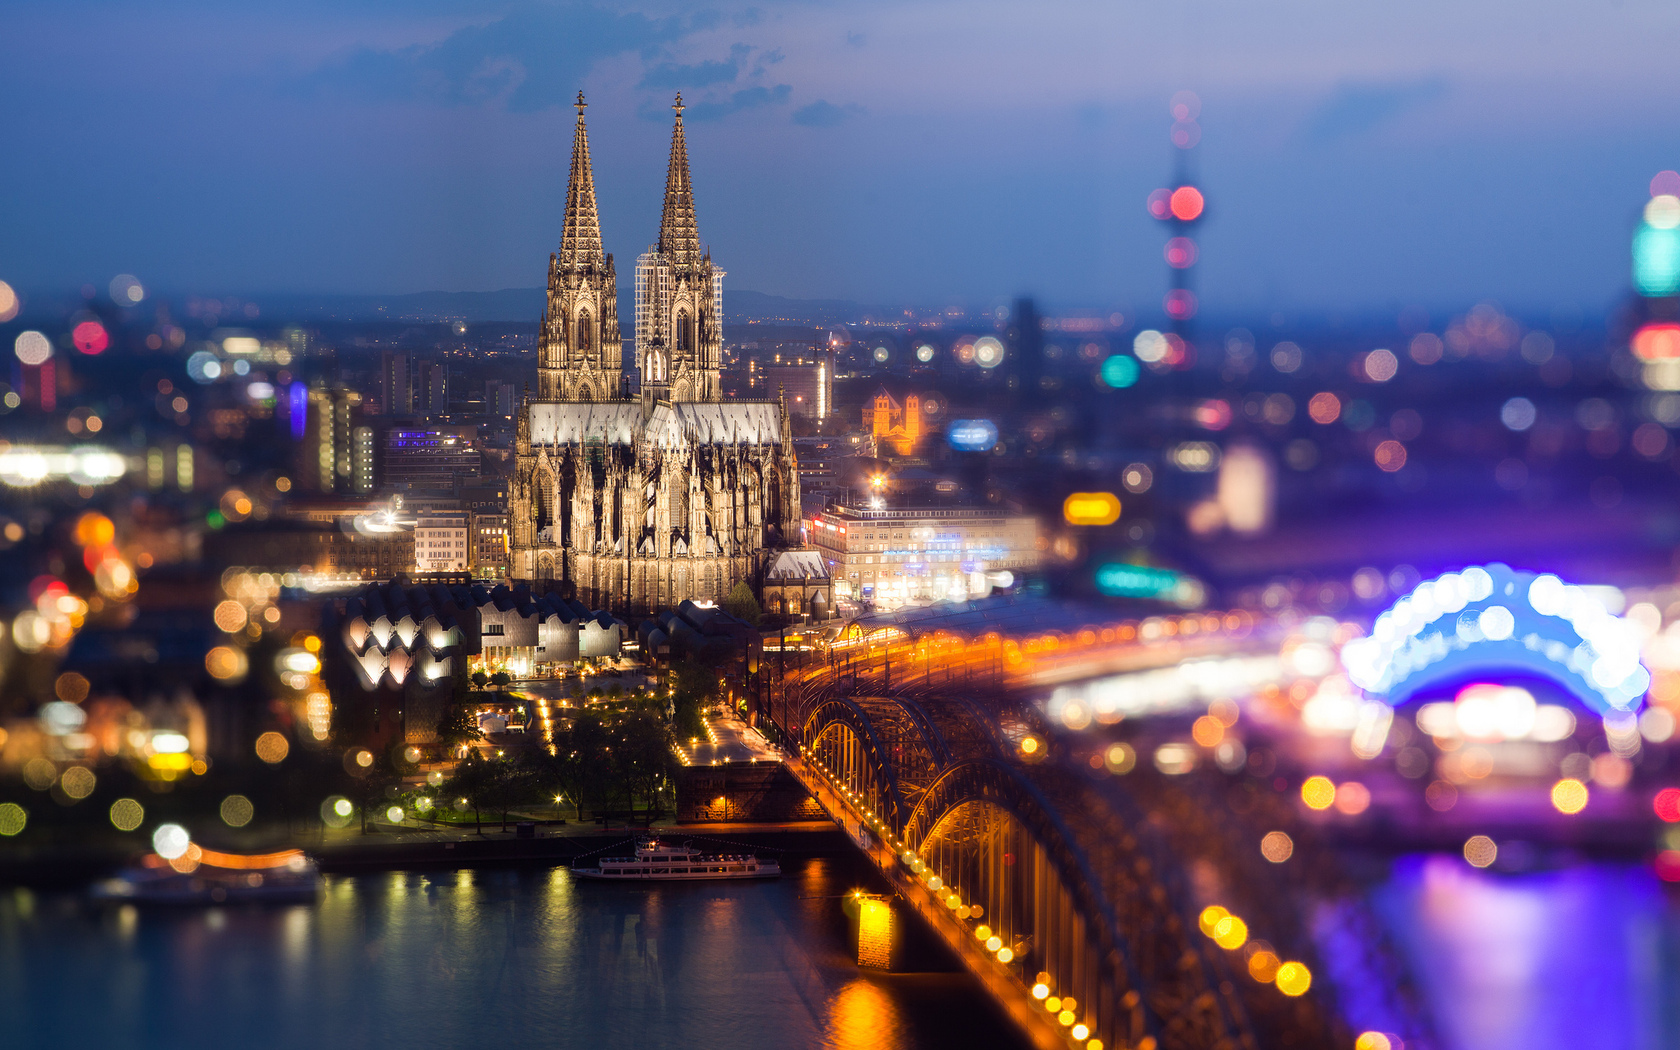 cologne-germany-at-night-midwest-having-lesbian